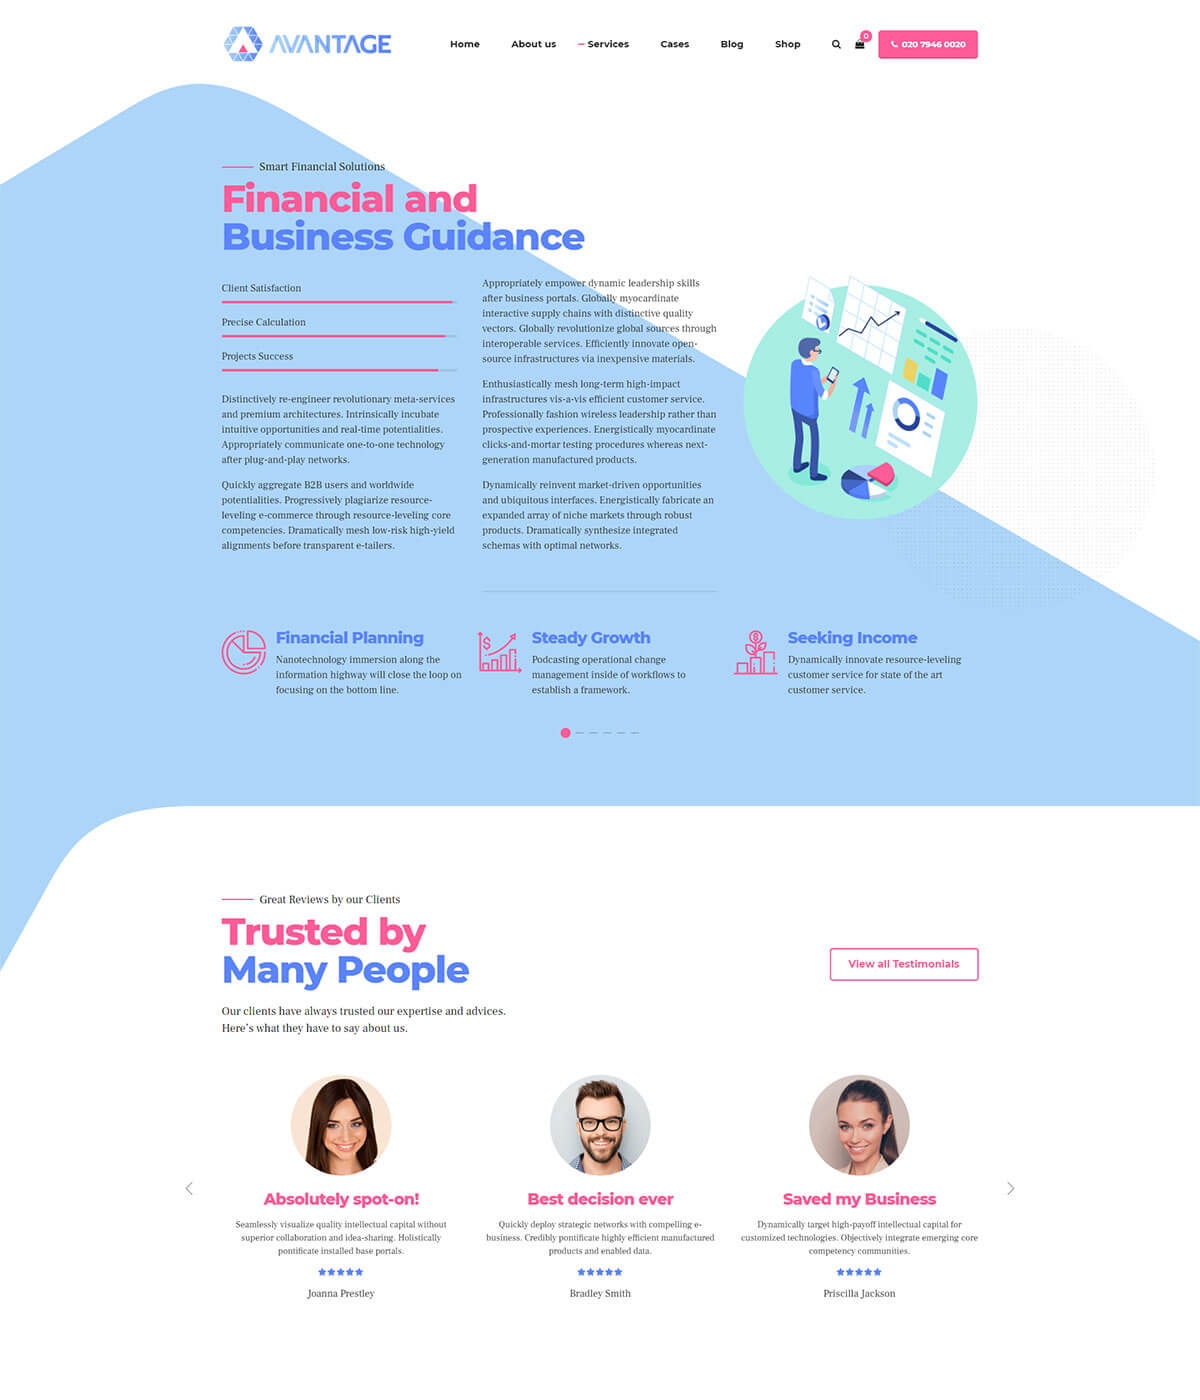 http://avantage.bold-themes.com/wp-content/uploads/2019/05/financial-07-single-service.jpg